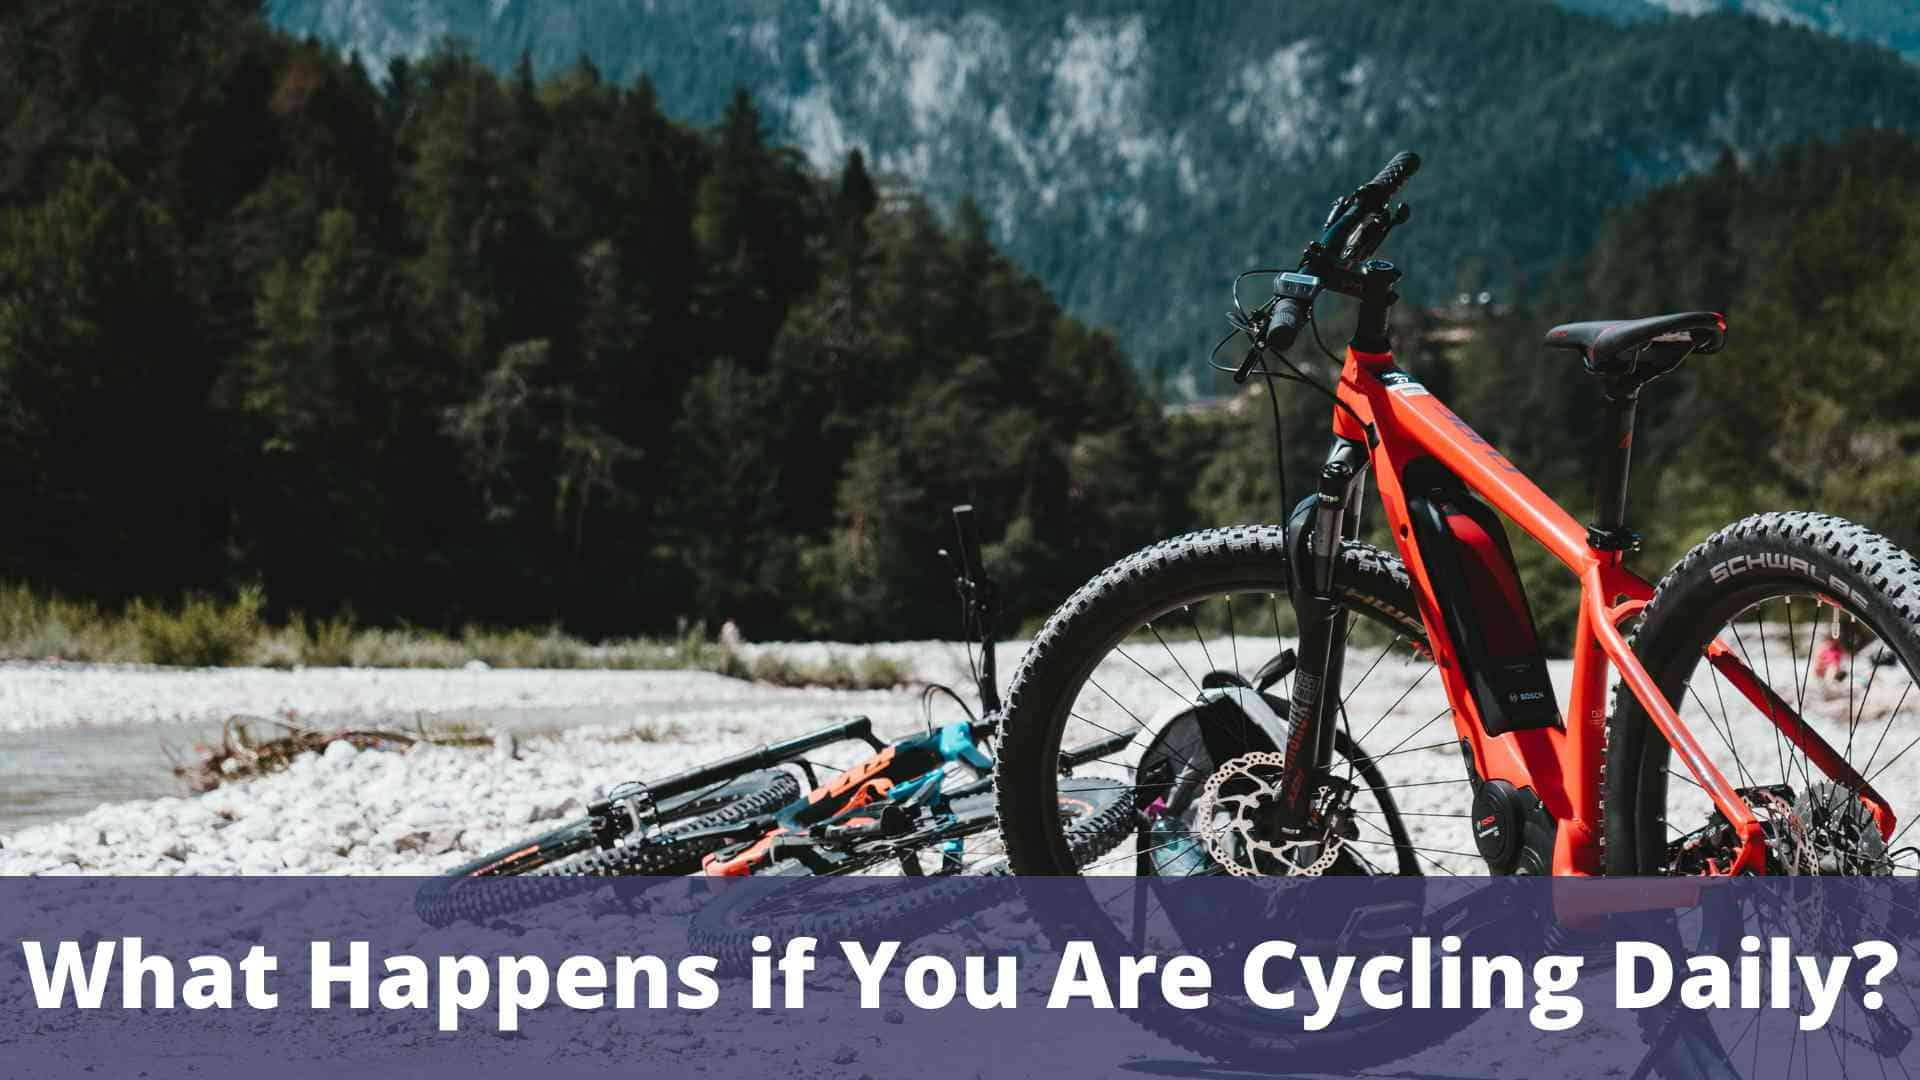 What happens if you are cycling daily?